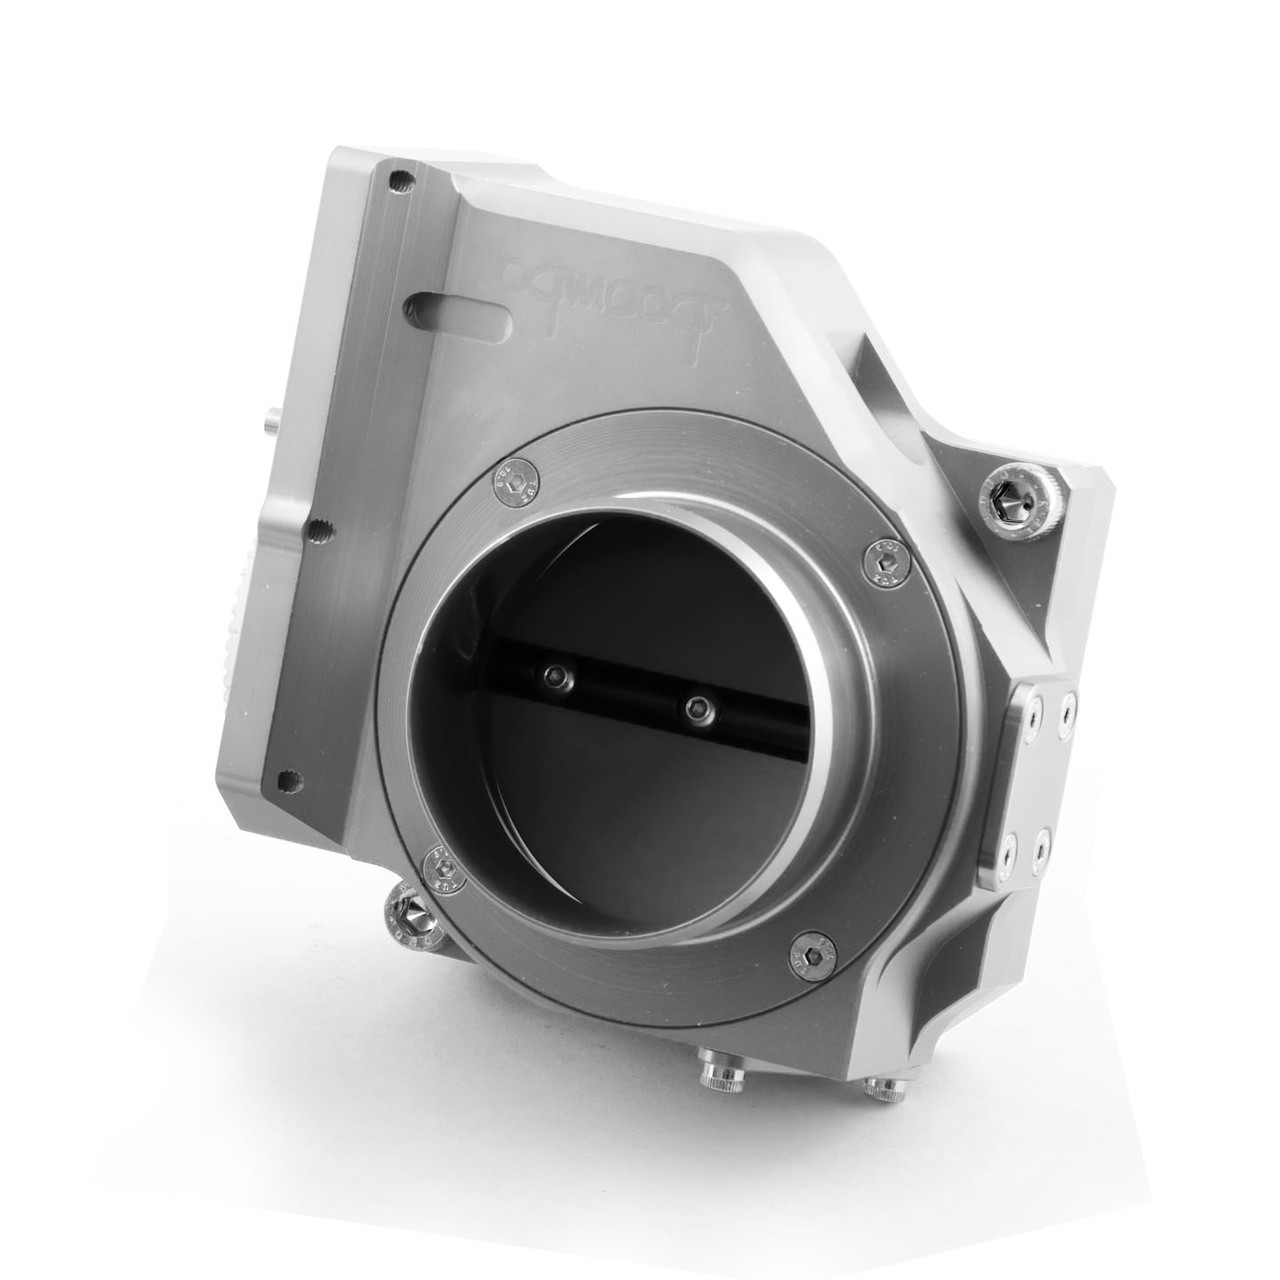 Subaru Impreza WRX STI 75mm DBW Throttle Body - Snap On